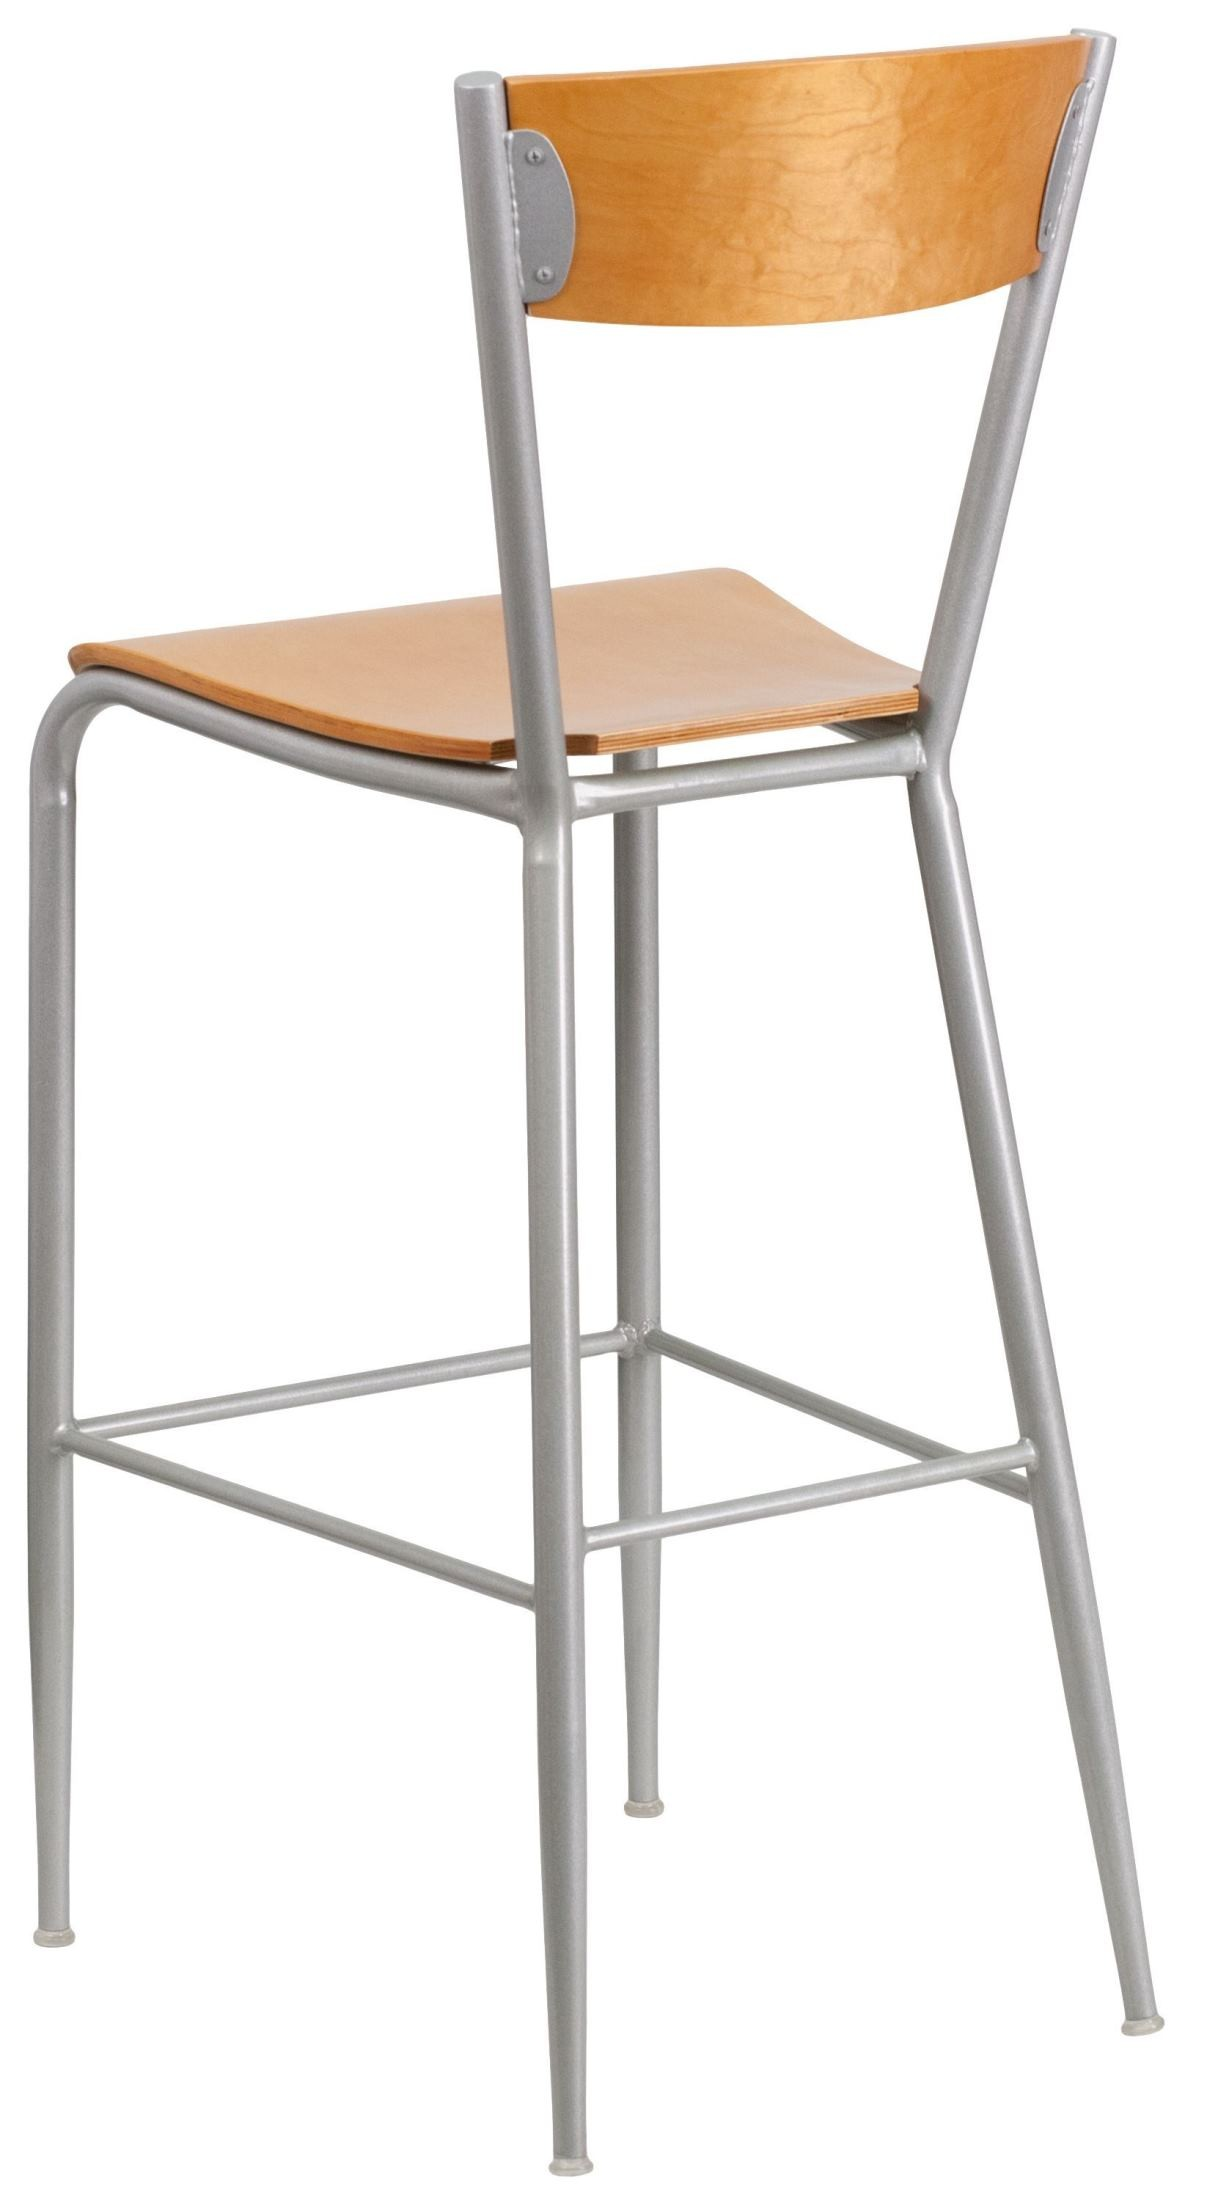 Invincible Series Natural Wood Back Metal Restaurant Barstool From Renegade Coleman Furniture